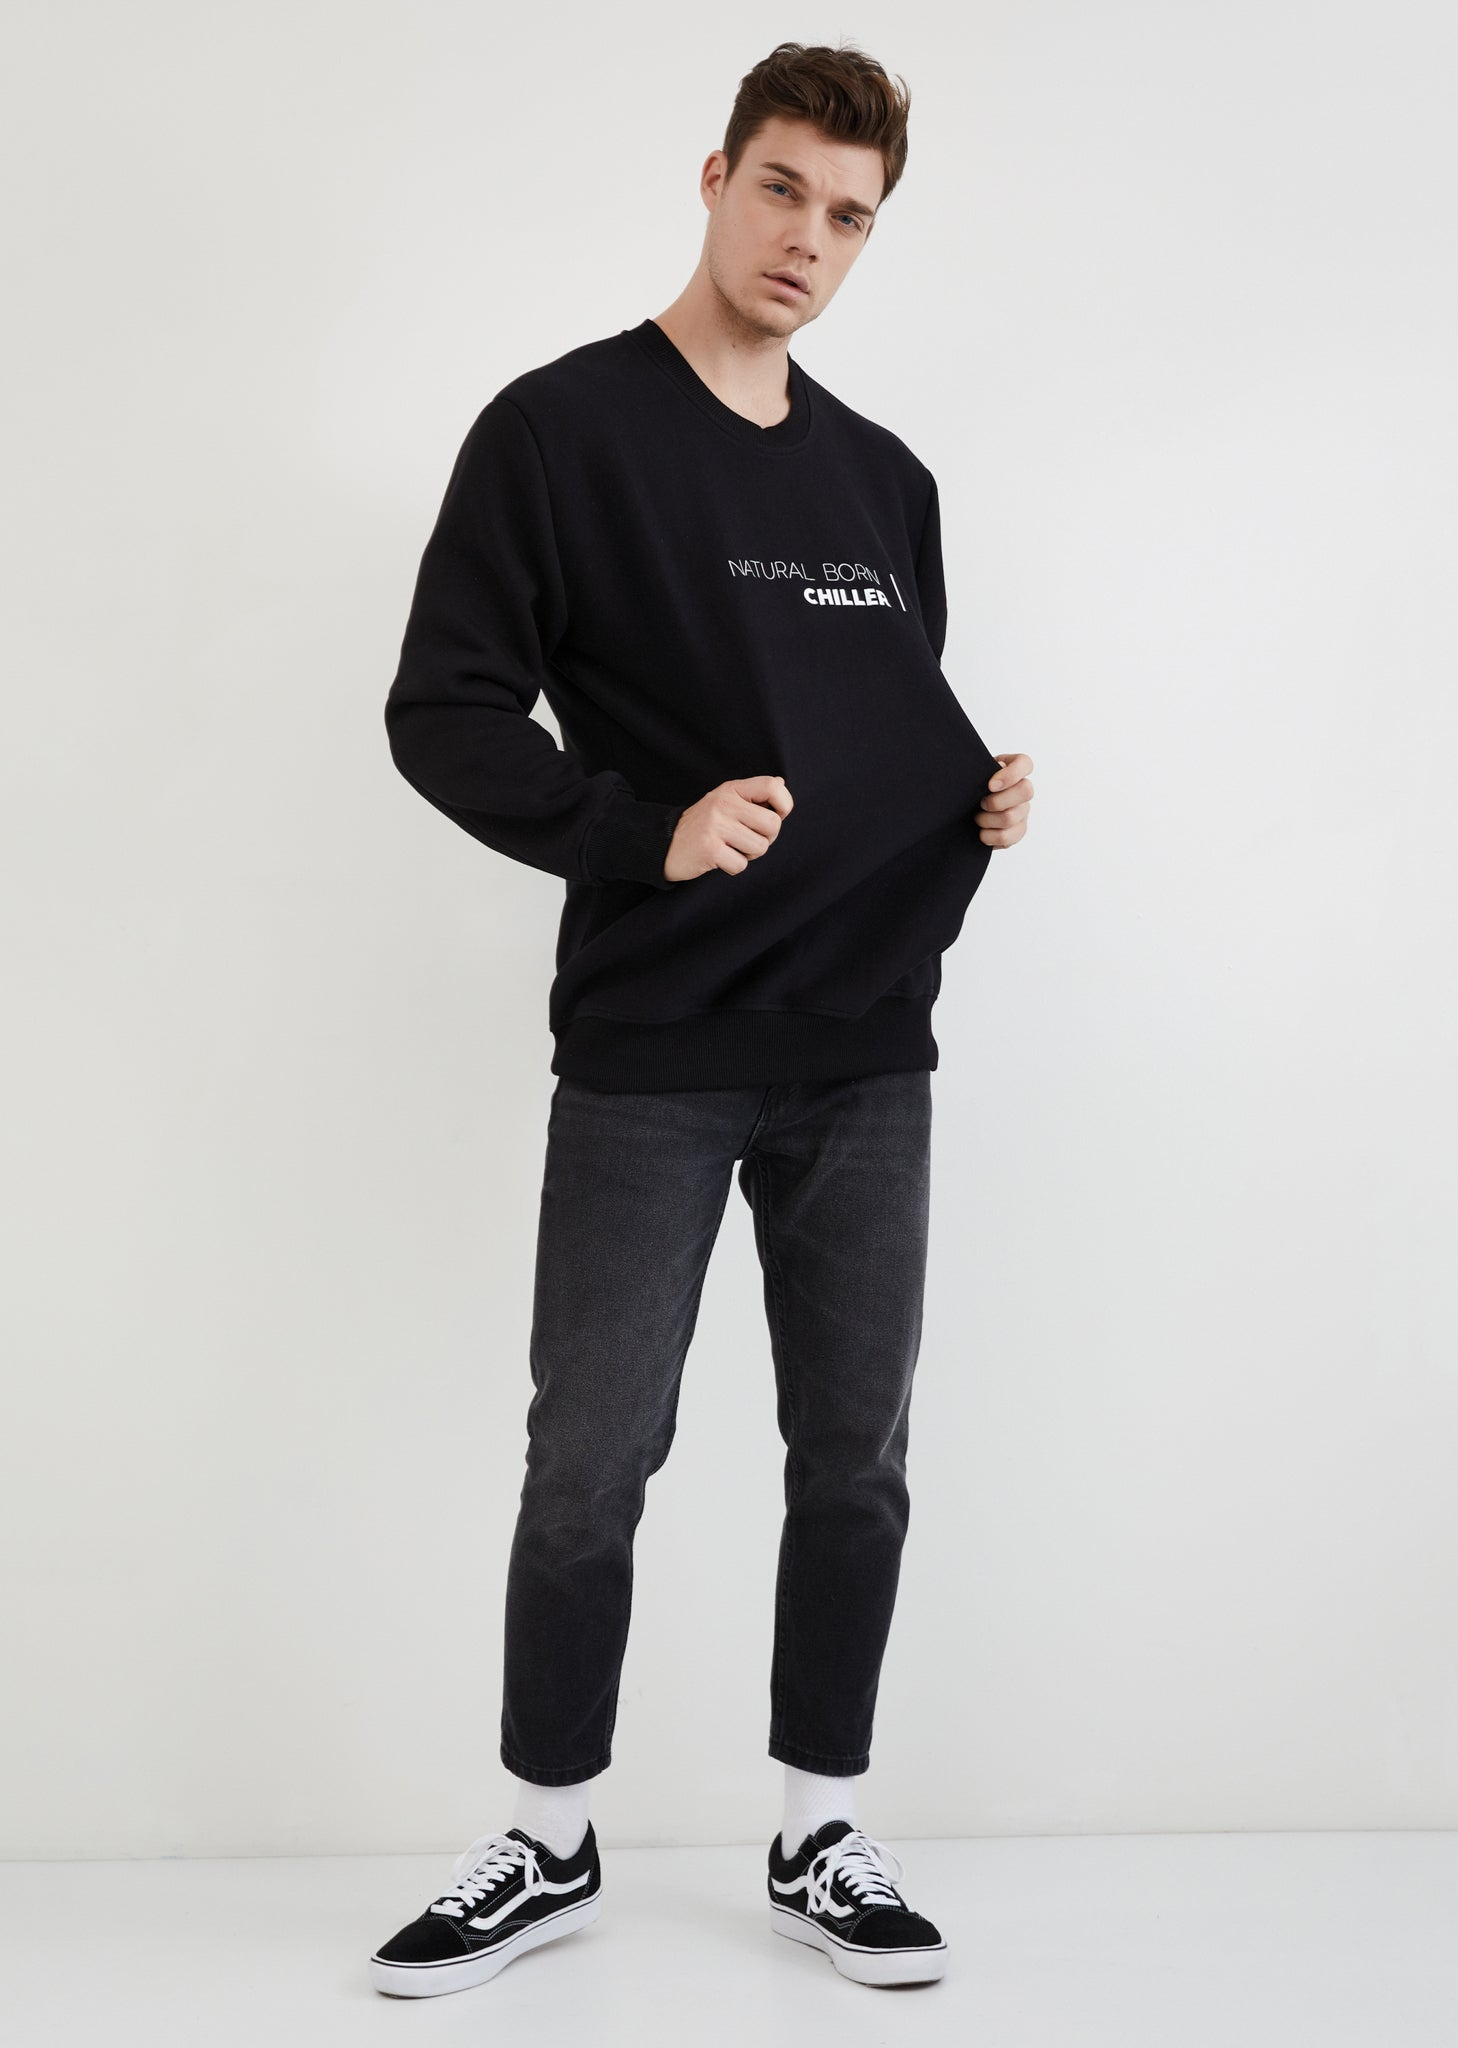 Natural Born Chiller / Unisex Sweatshirt